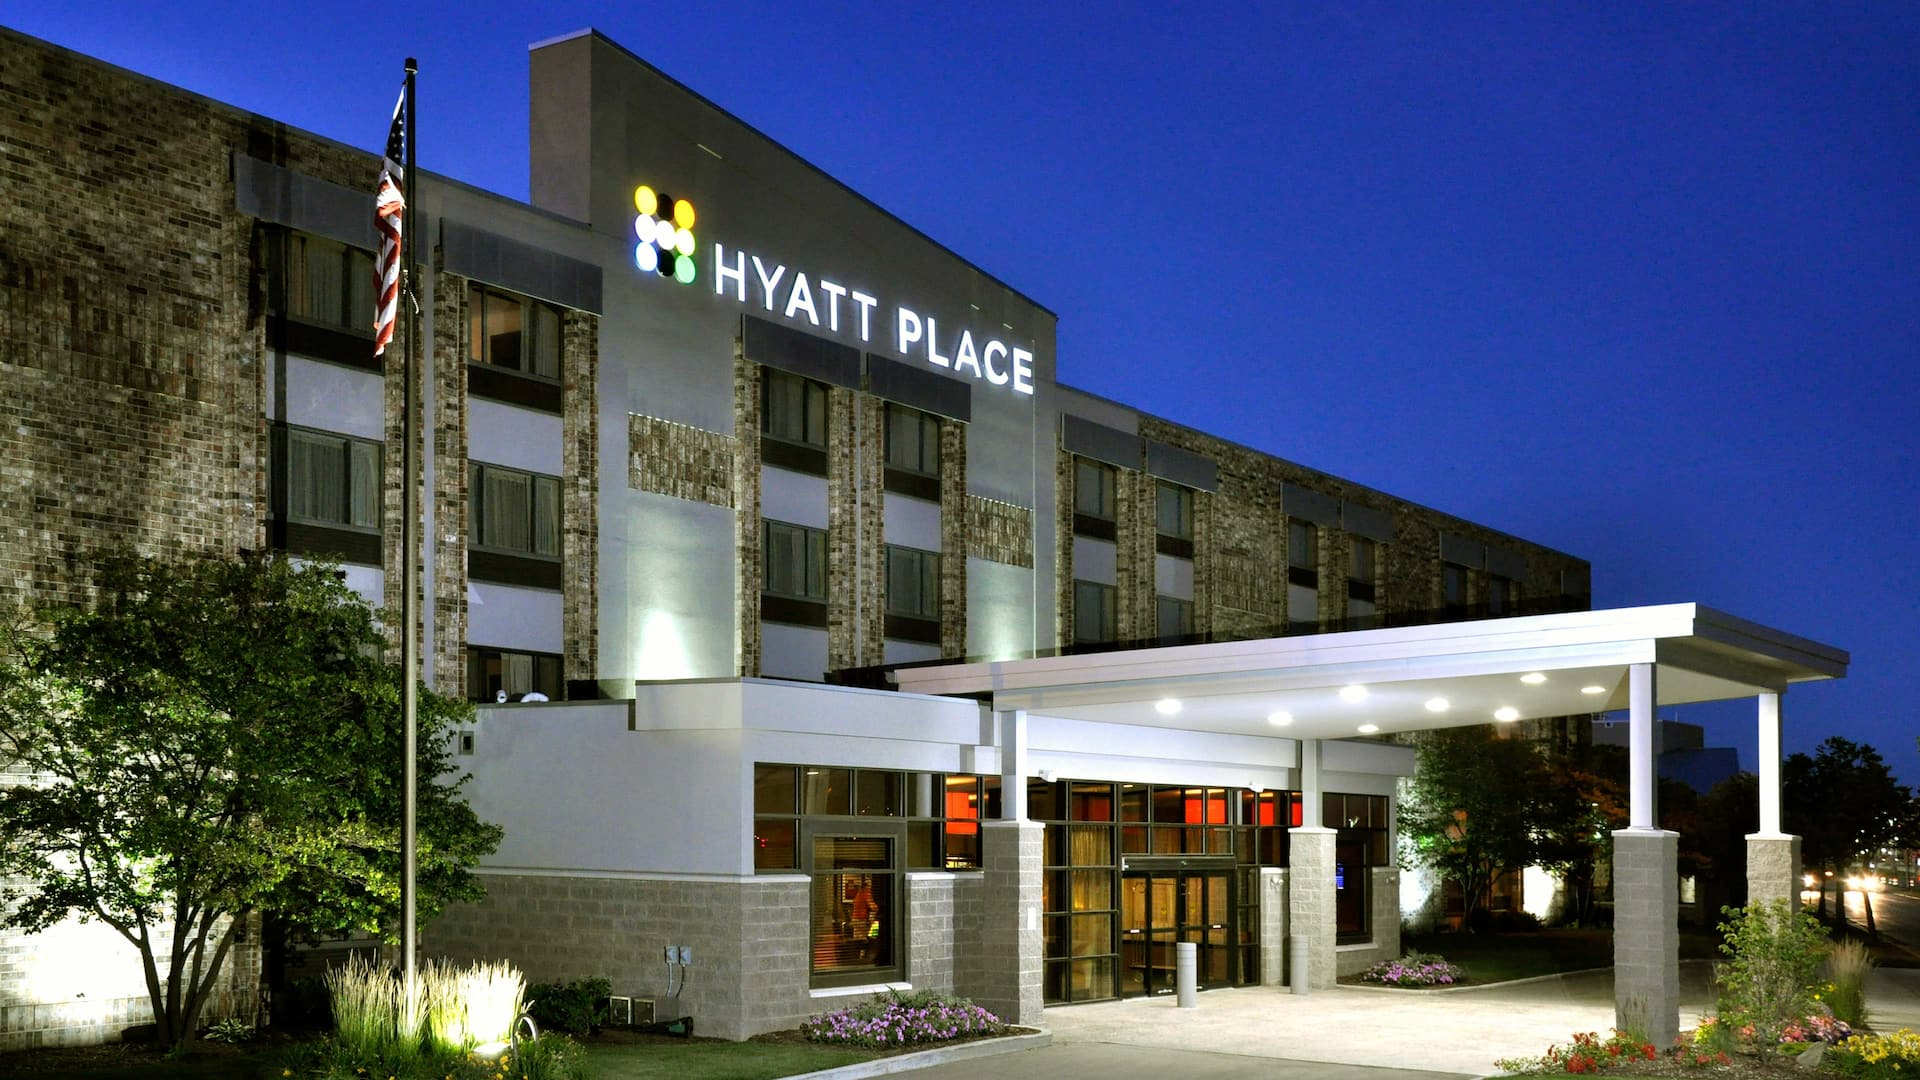 Hyatt Place Milwaukee Airport Hotel exterior